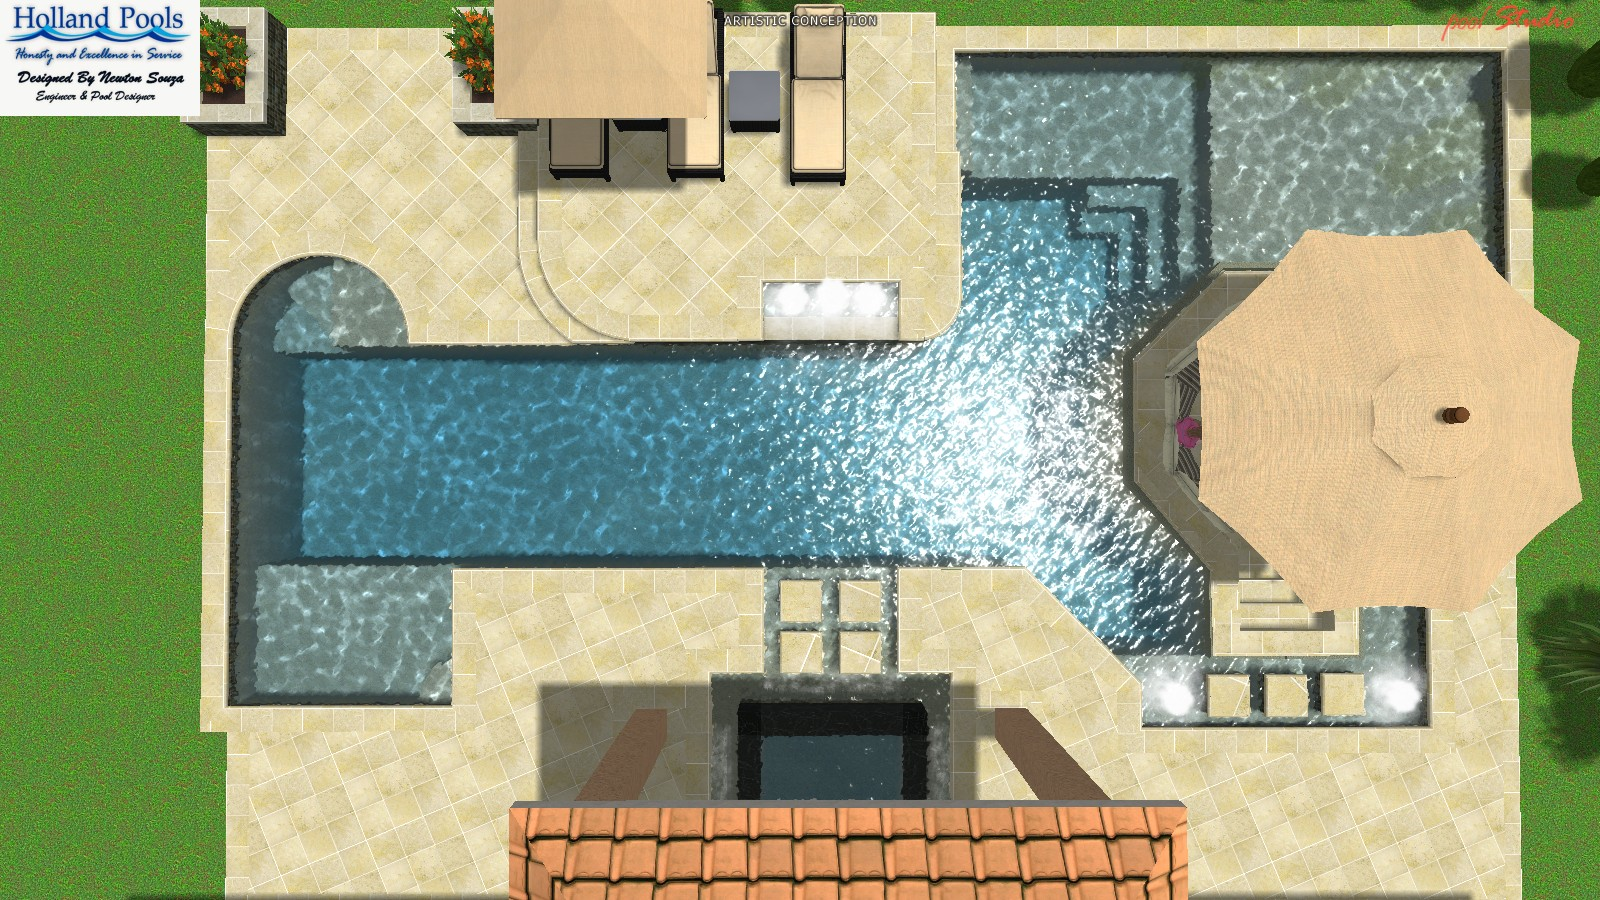 Sport and Resort Pool, The Latest Trend in Pool Design